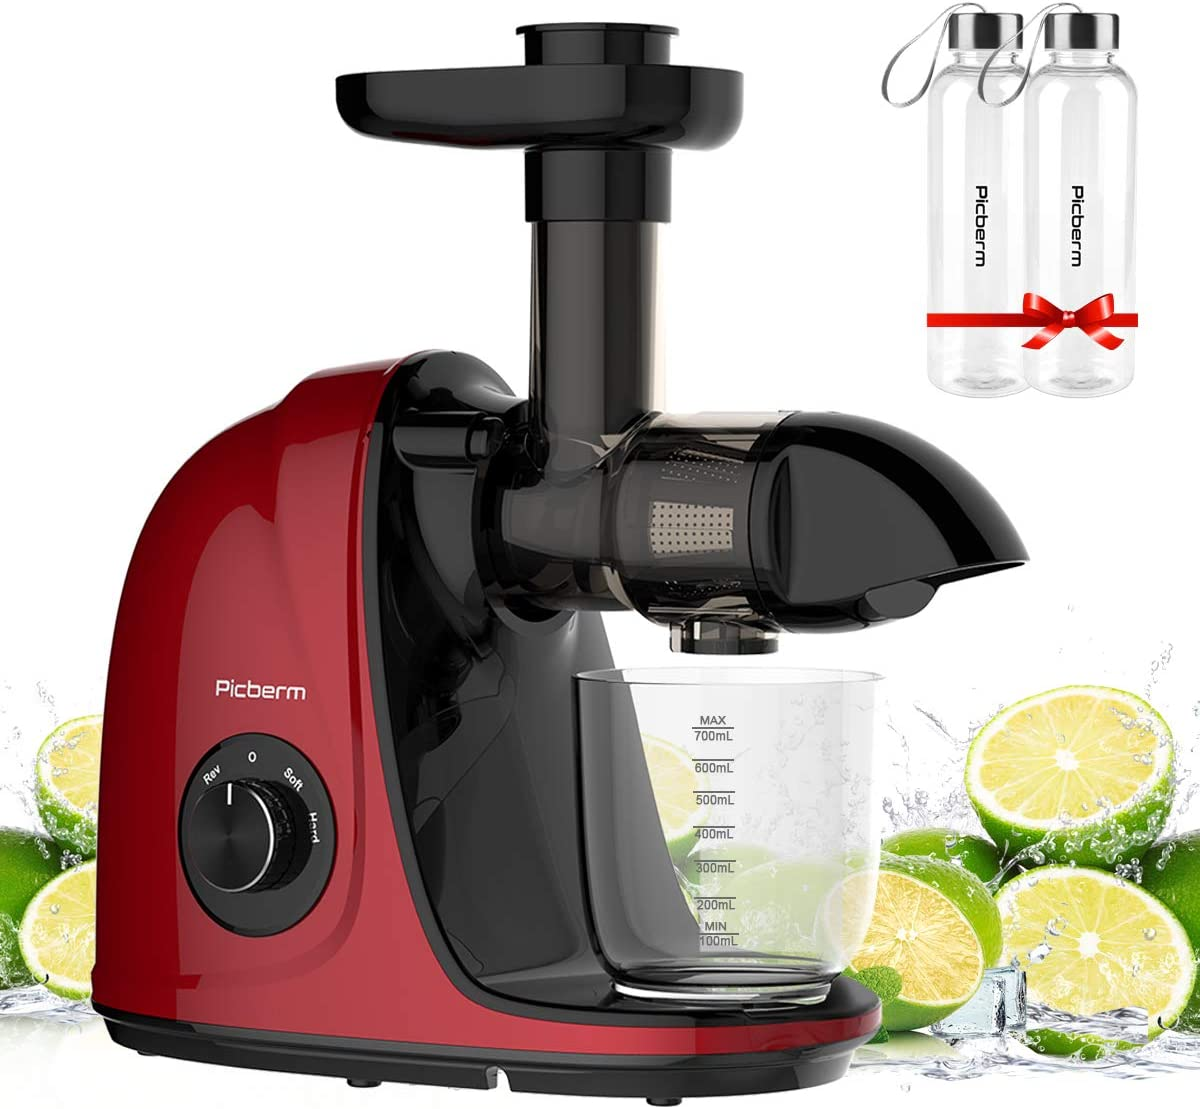 Picberm Masticating Juicer, Slow Juicer Machines Easy to Clean, Quiet Motor, Anti-Clogging, Soft & Hard 2 Speeds Fruits Veggies Juice Extractor, BPA-Free, Red and 2 Pack Bottles 17oz